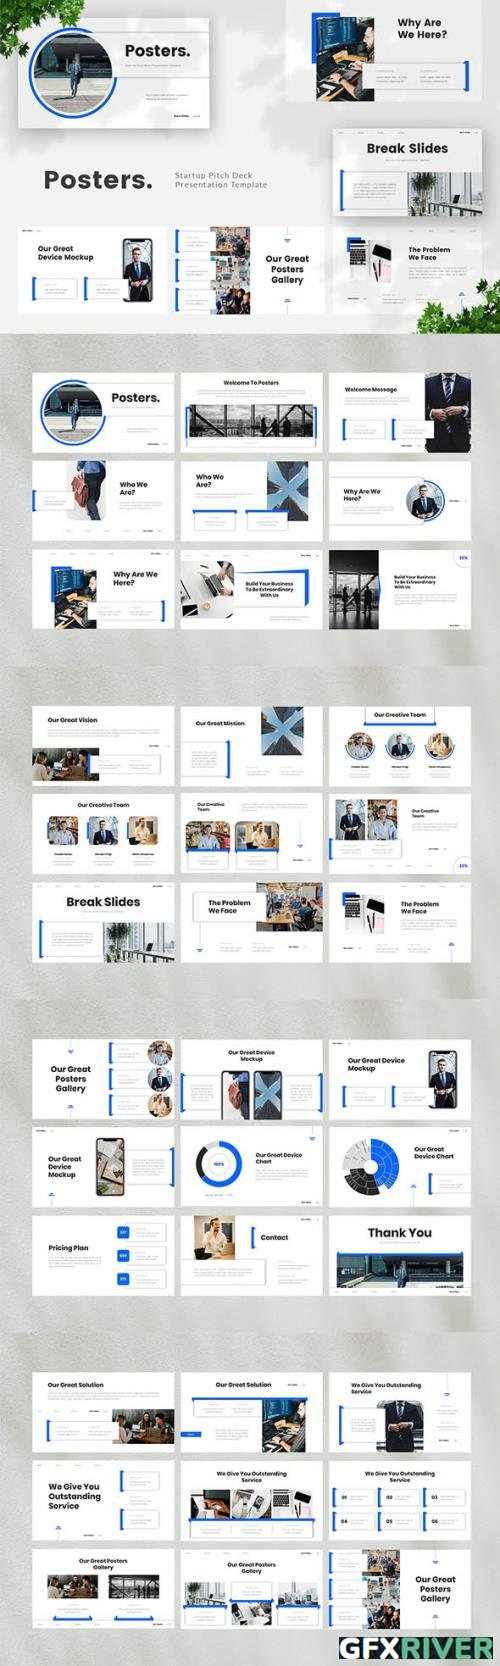 Startup Pitch Deck Powerpoint, Keynote and Google Slides Template